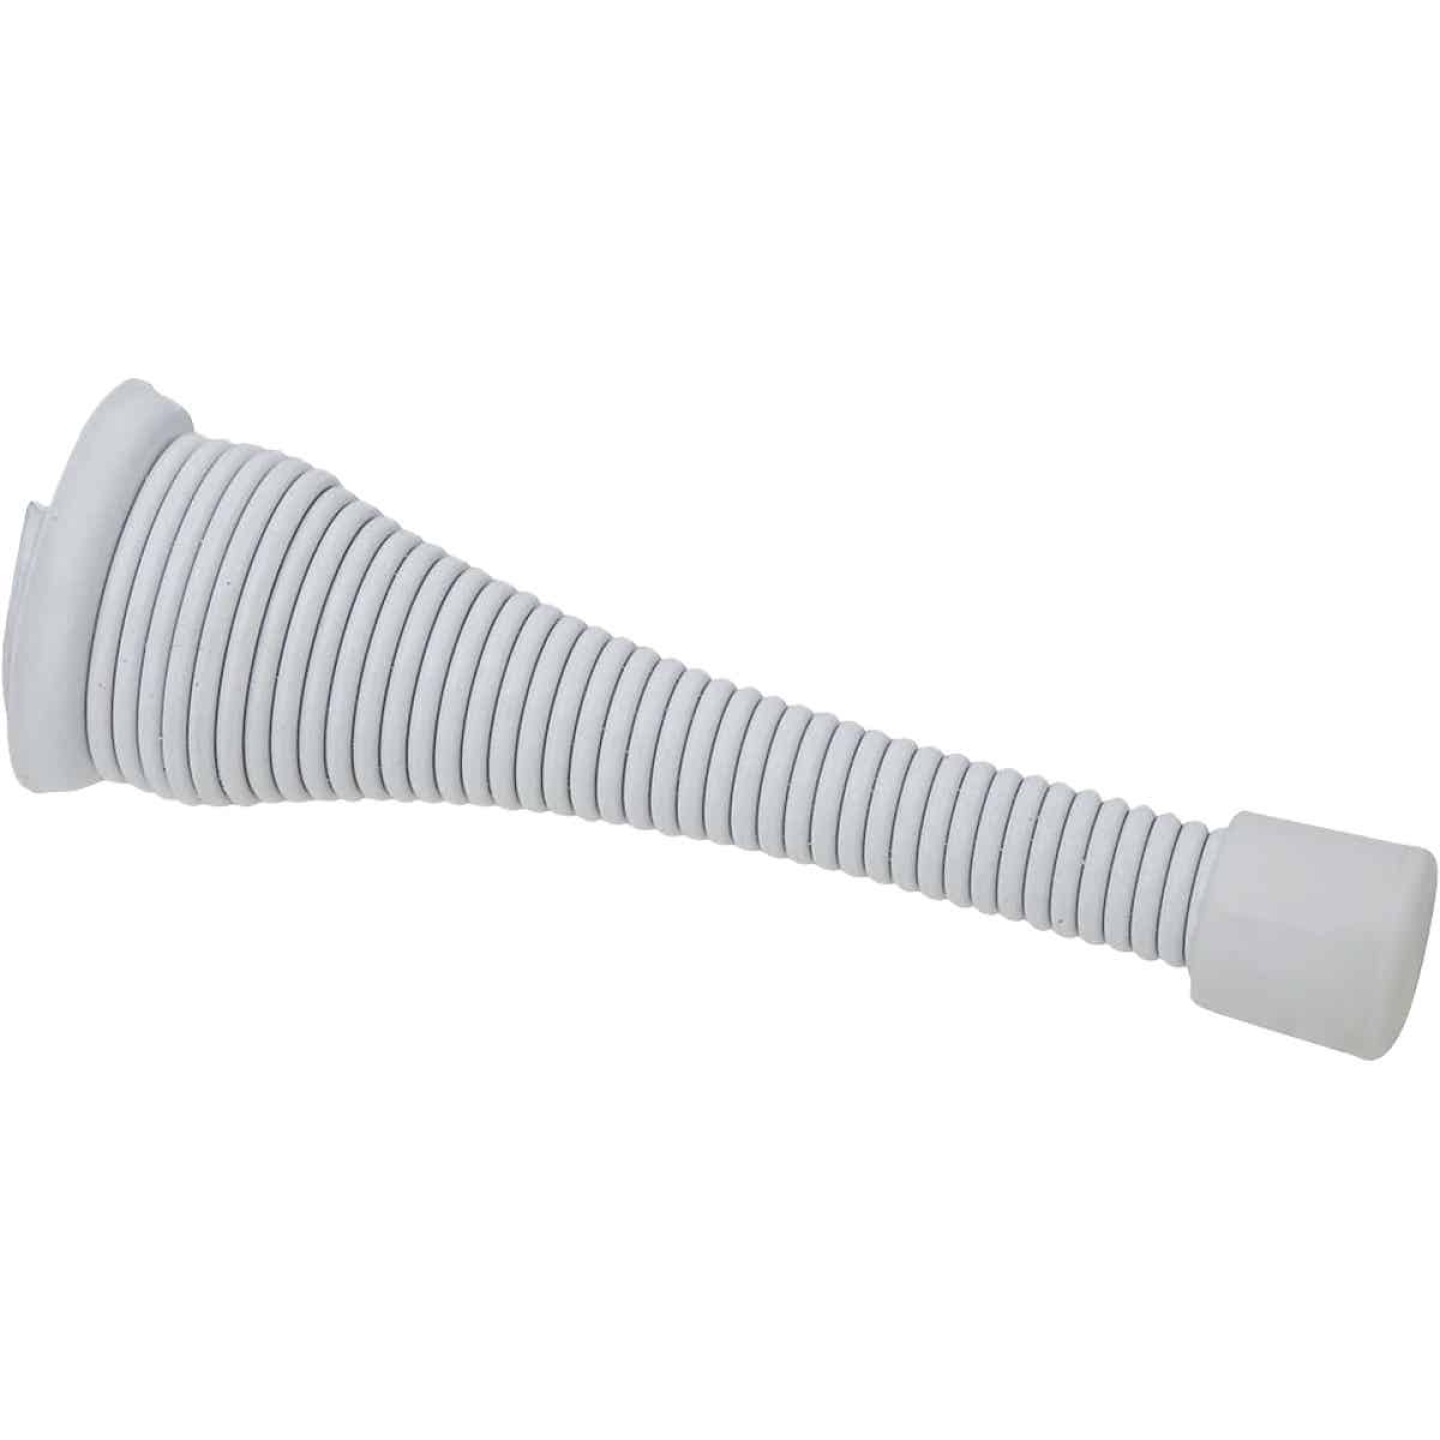 National White Broad Spring Door Stop Image 1